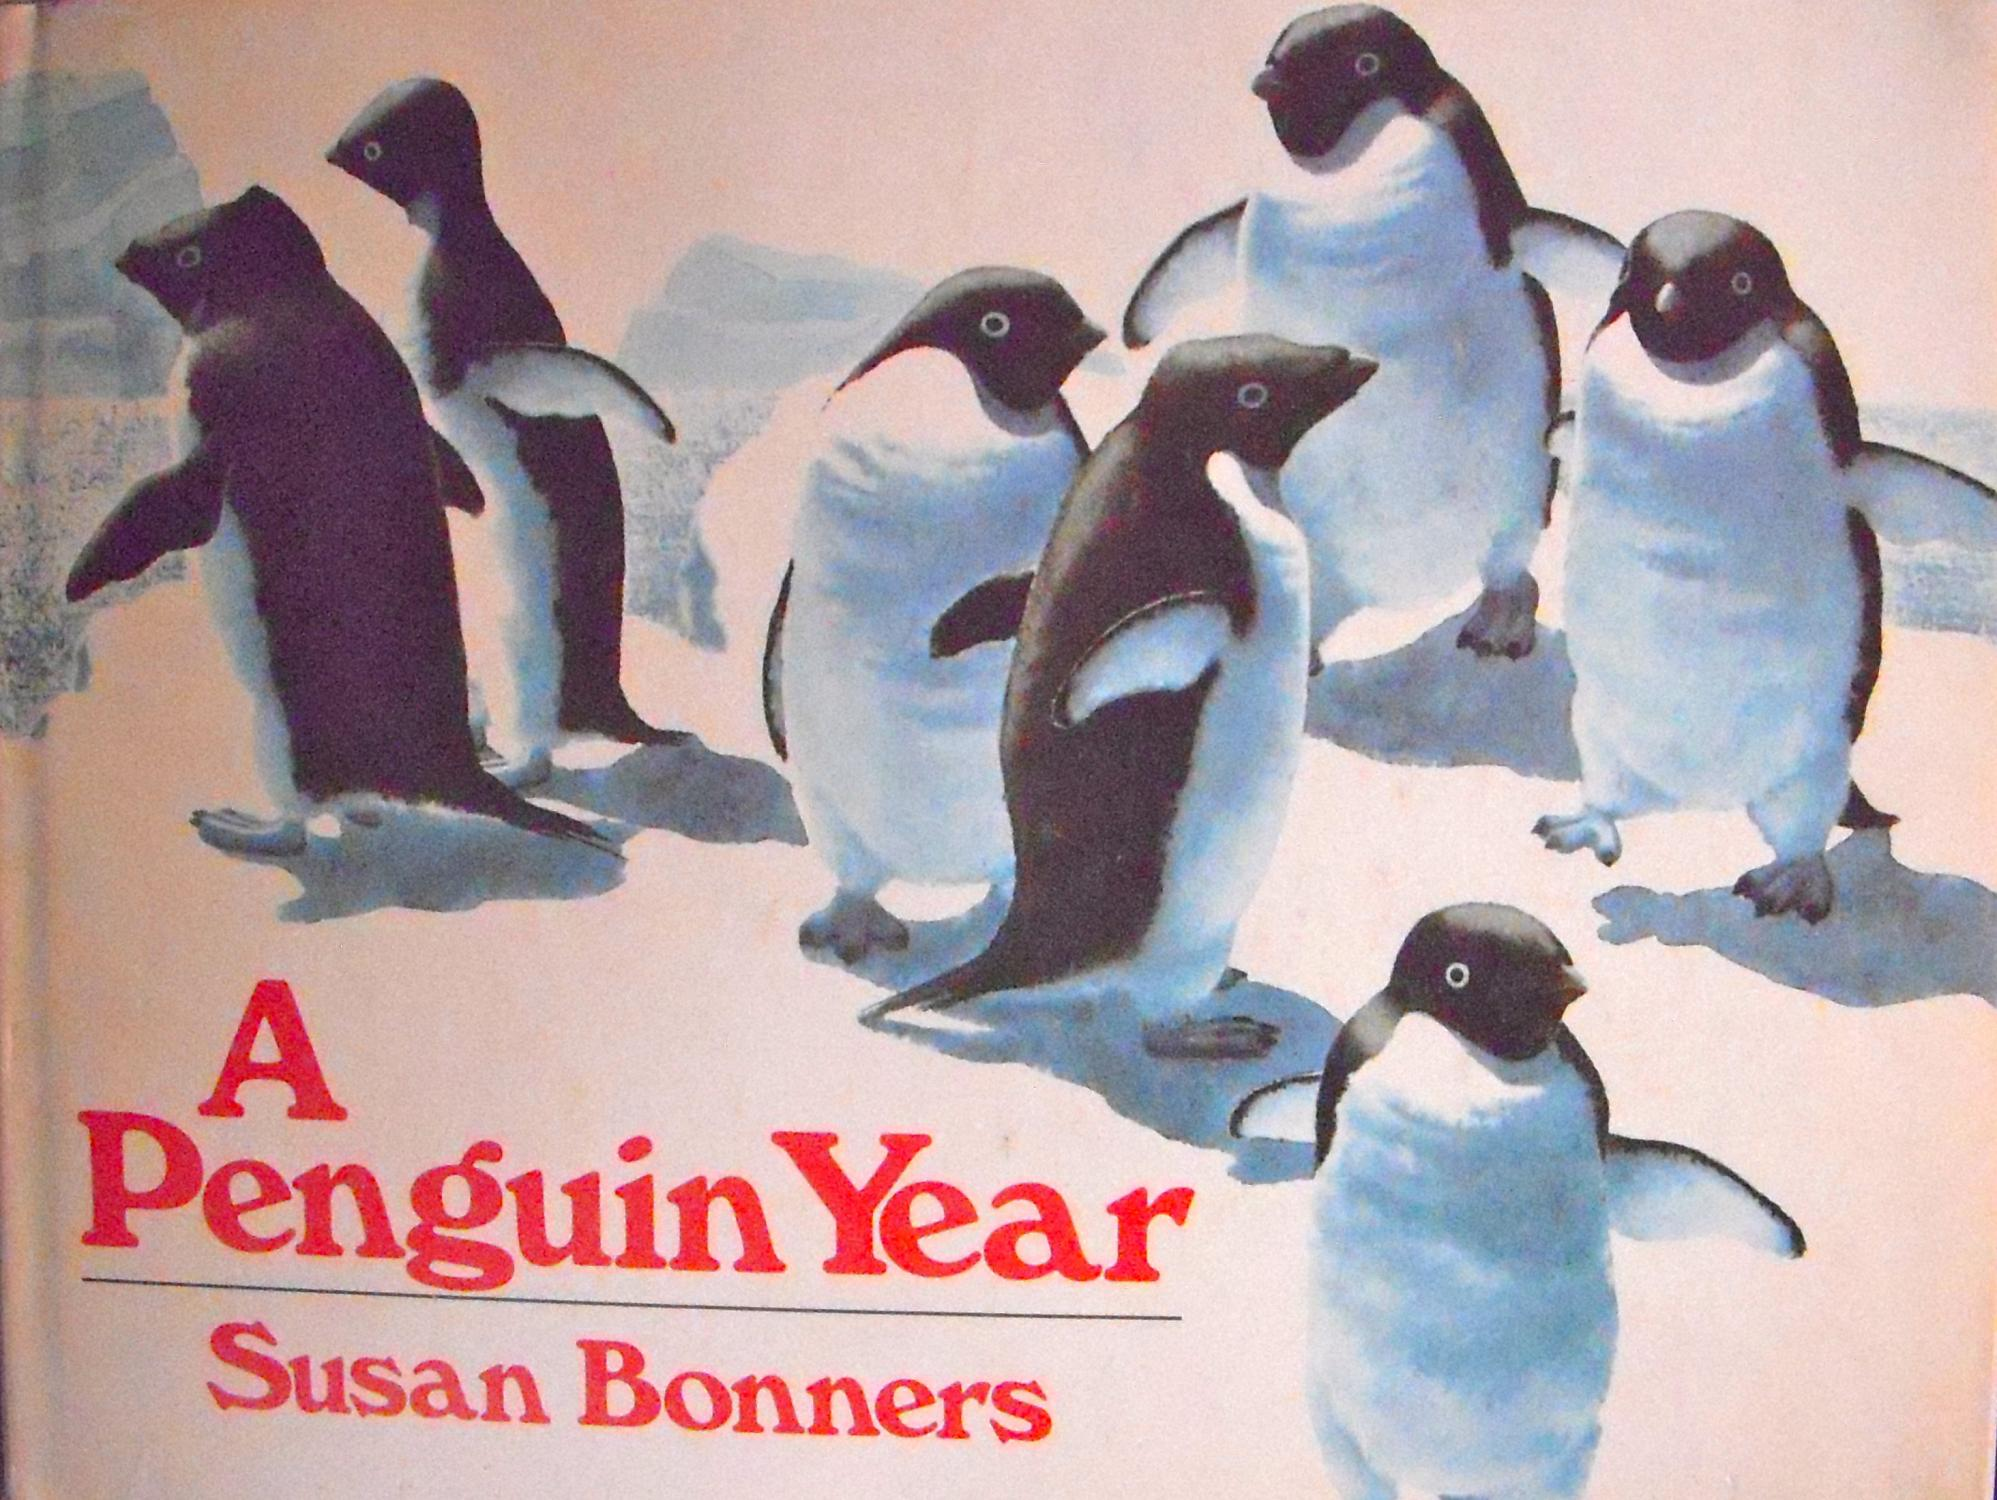 over of A Penguin Year by Susan Bonners